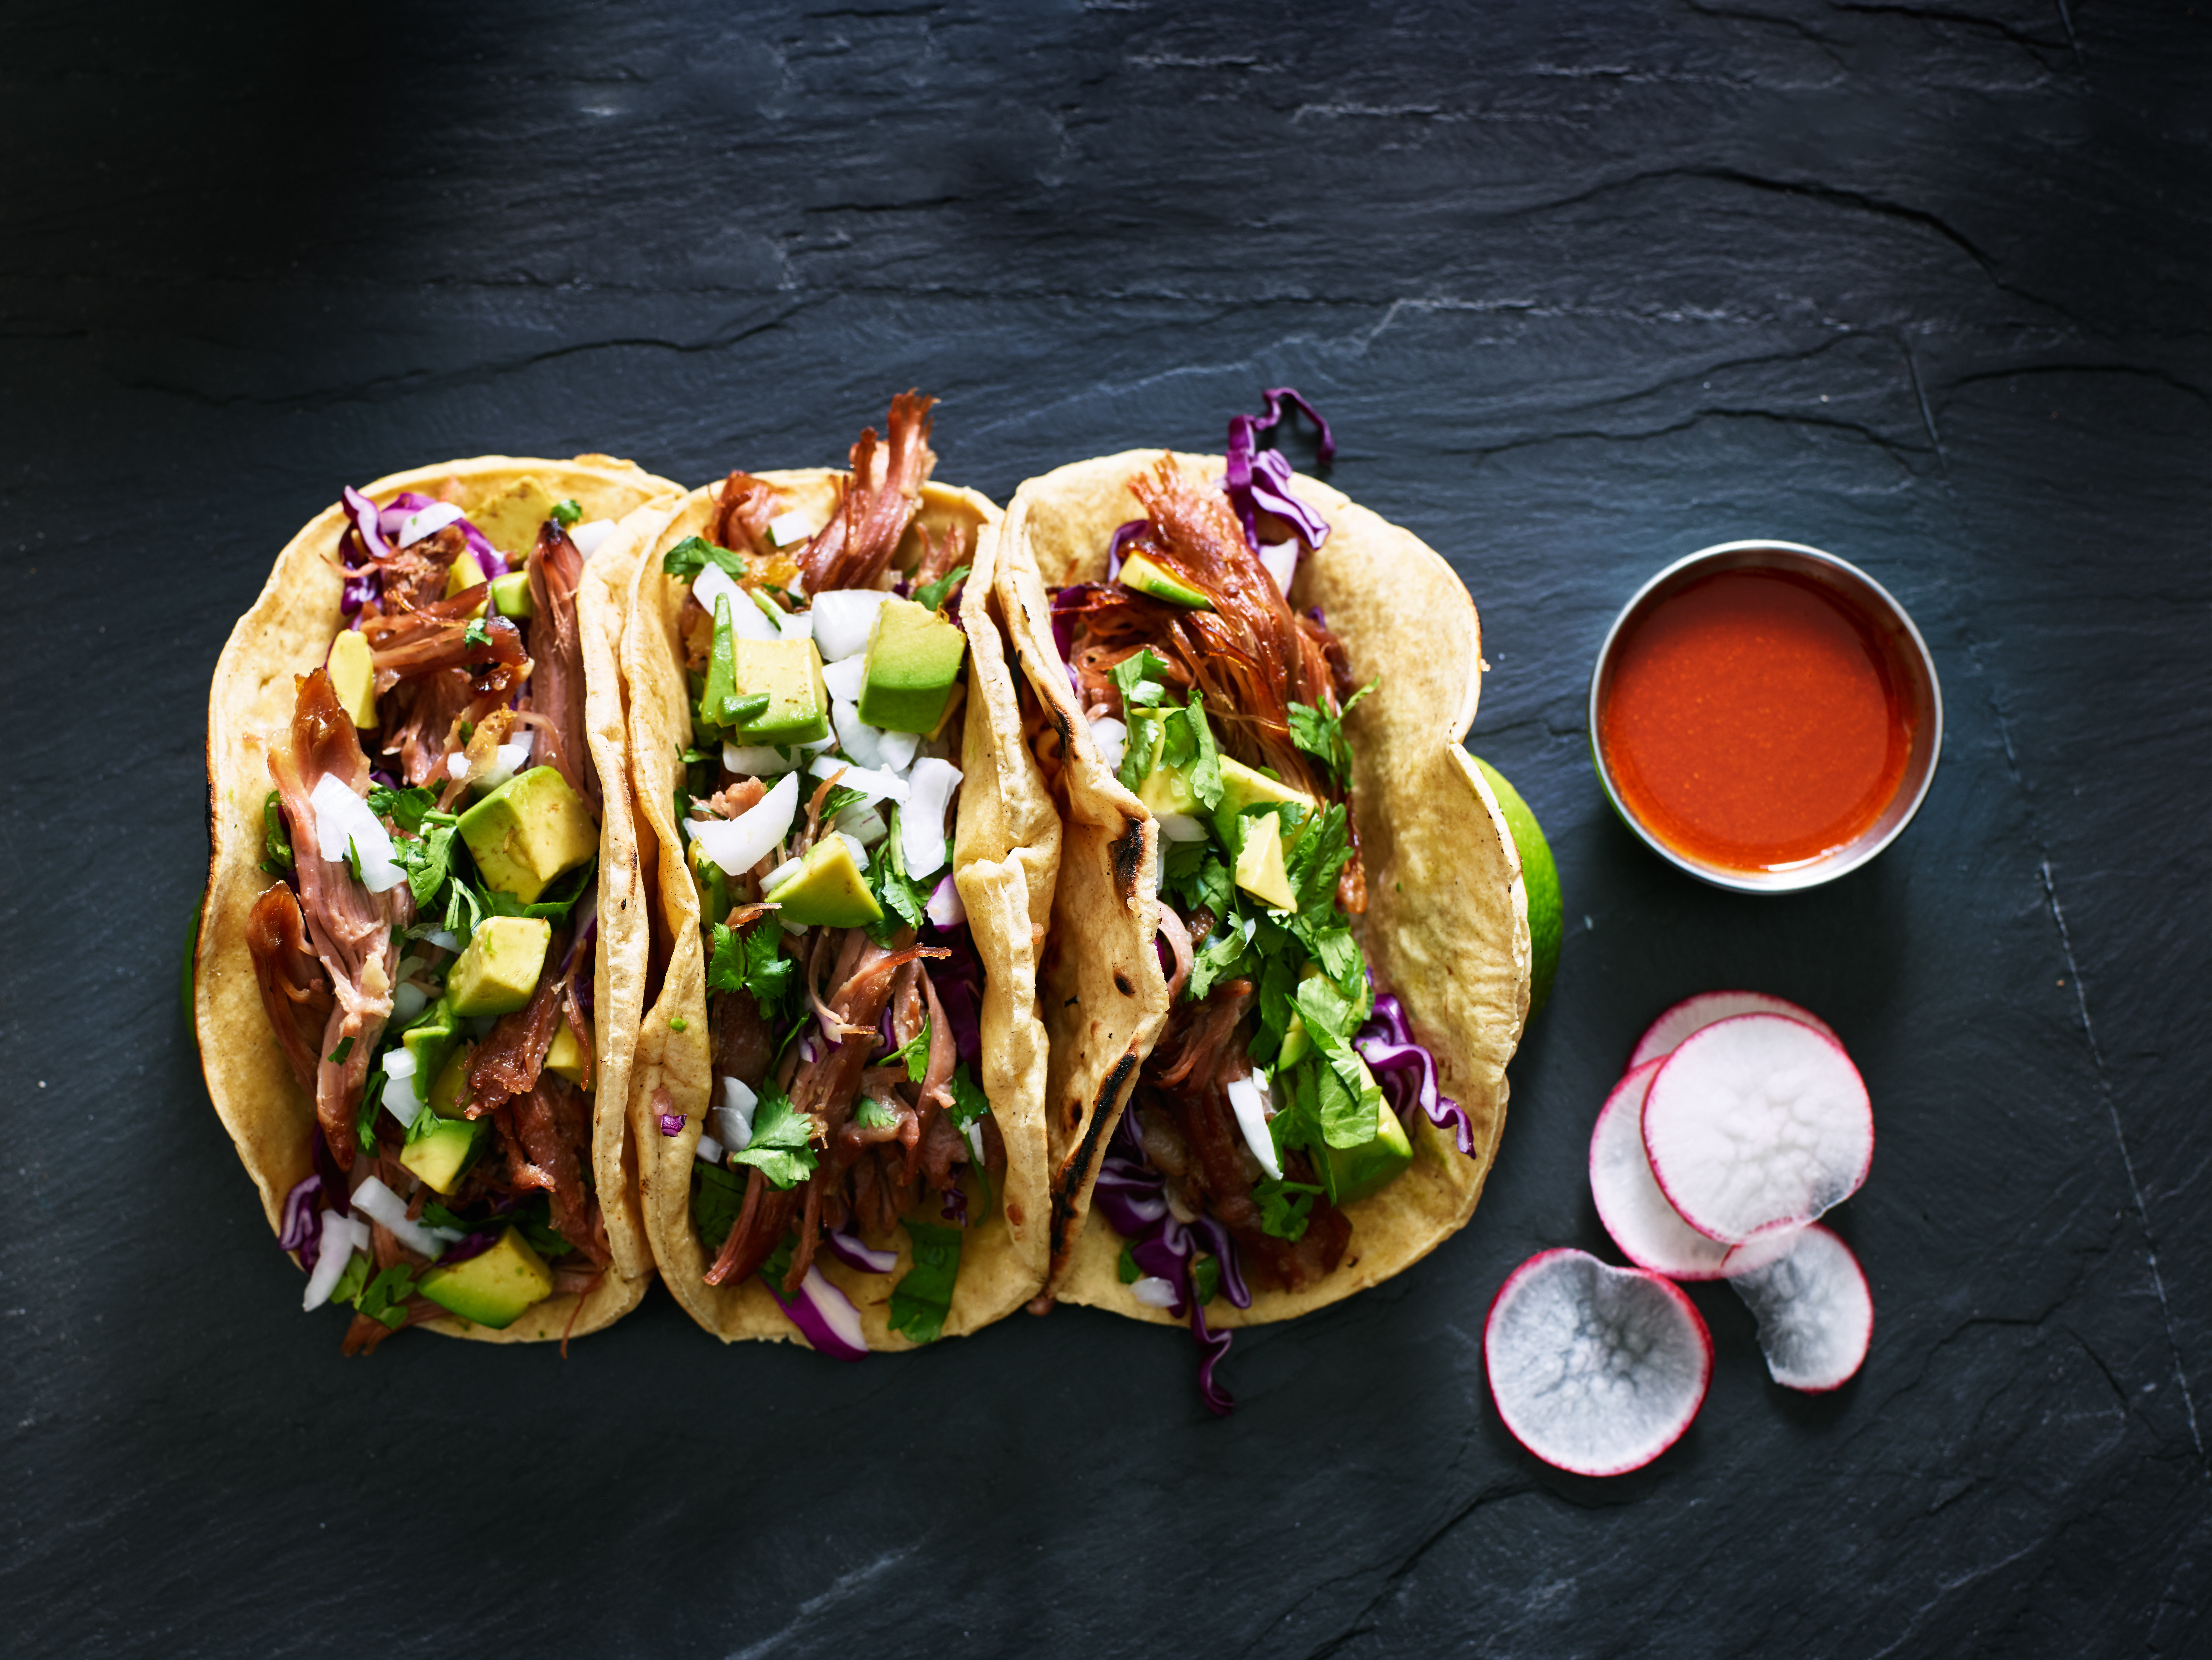 Carlos Miguel's serves up some tasty tacos during their fundraisers.